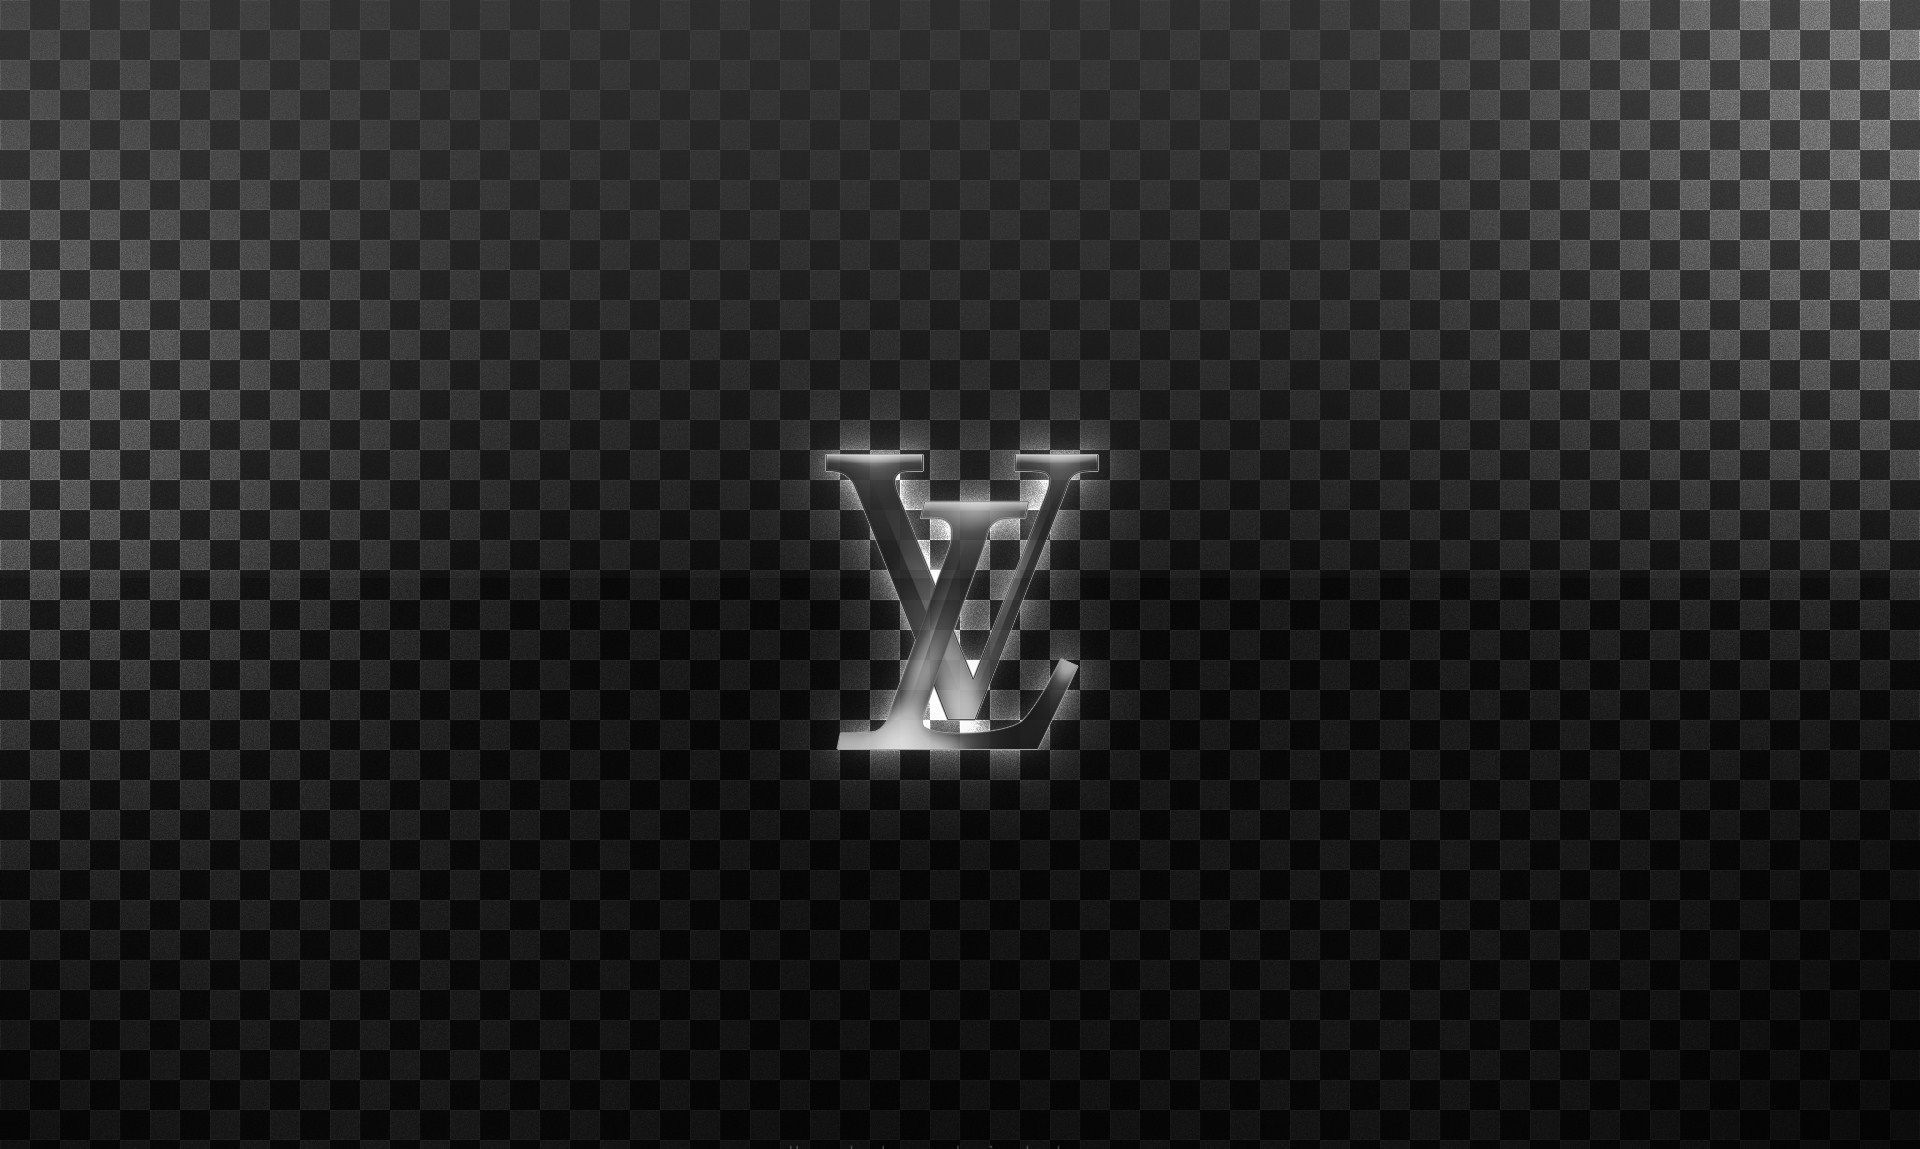 Louis Vuitton IPhone Wallpapers (41 Wallpapers)